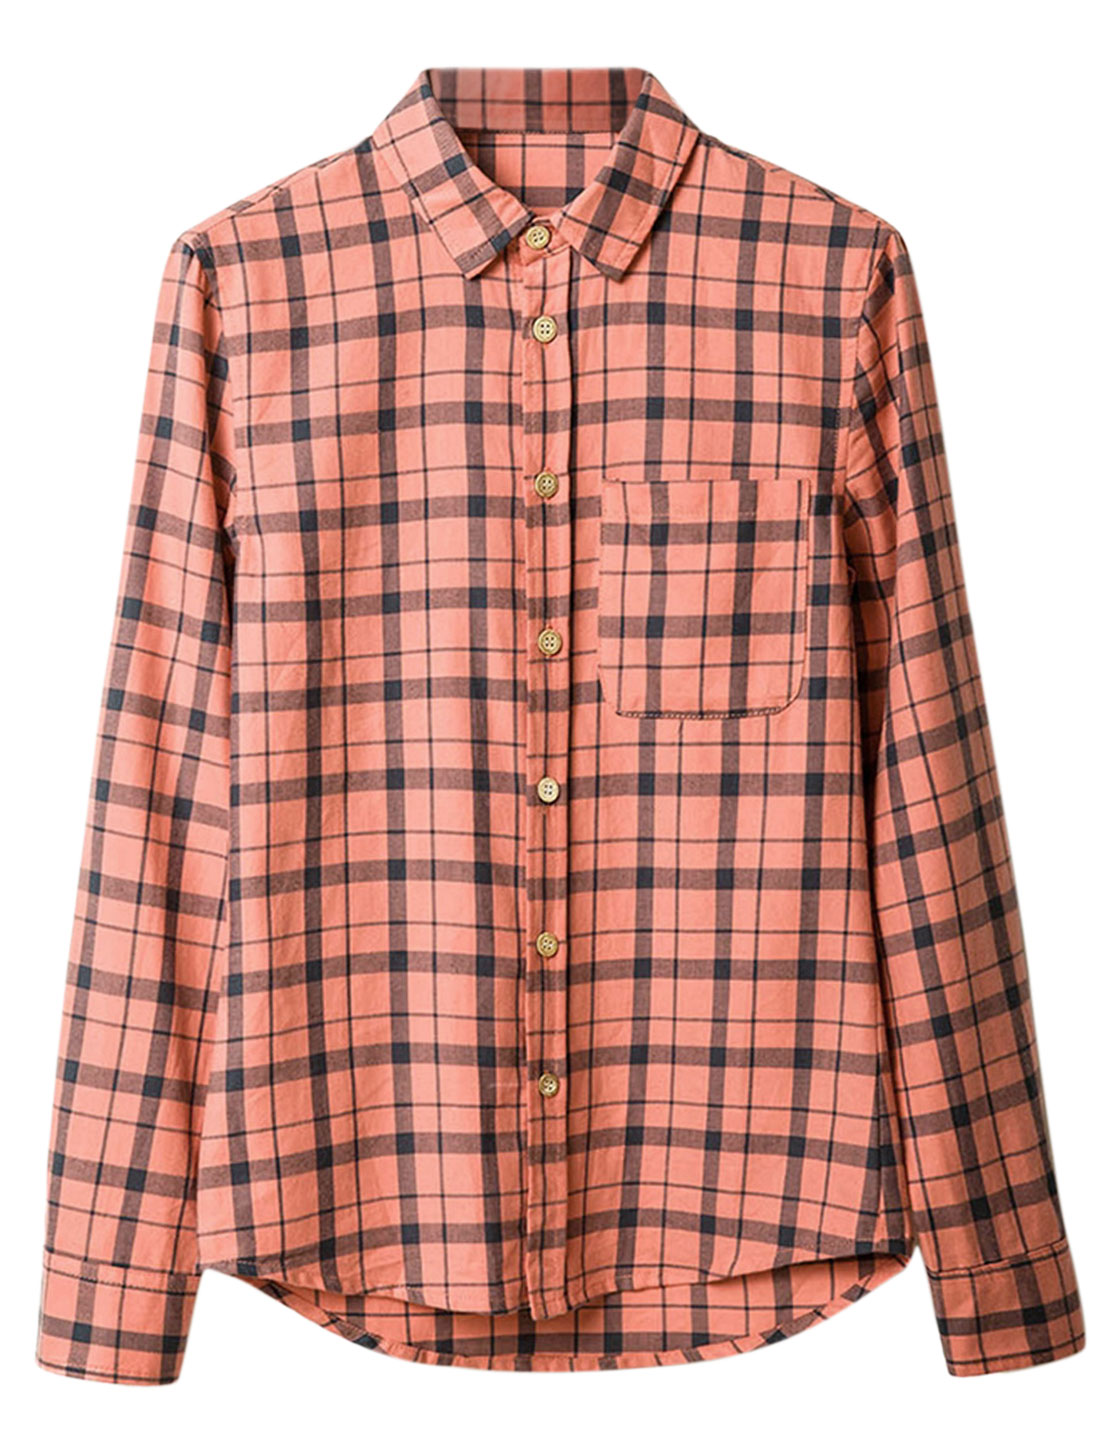 Men Point Collar Checks Button Down Round Hem Chic Shirt Coral M